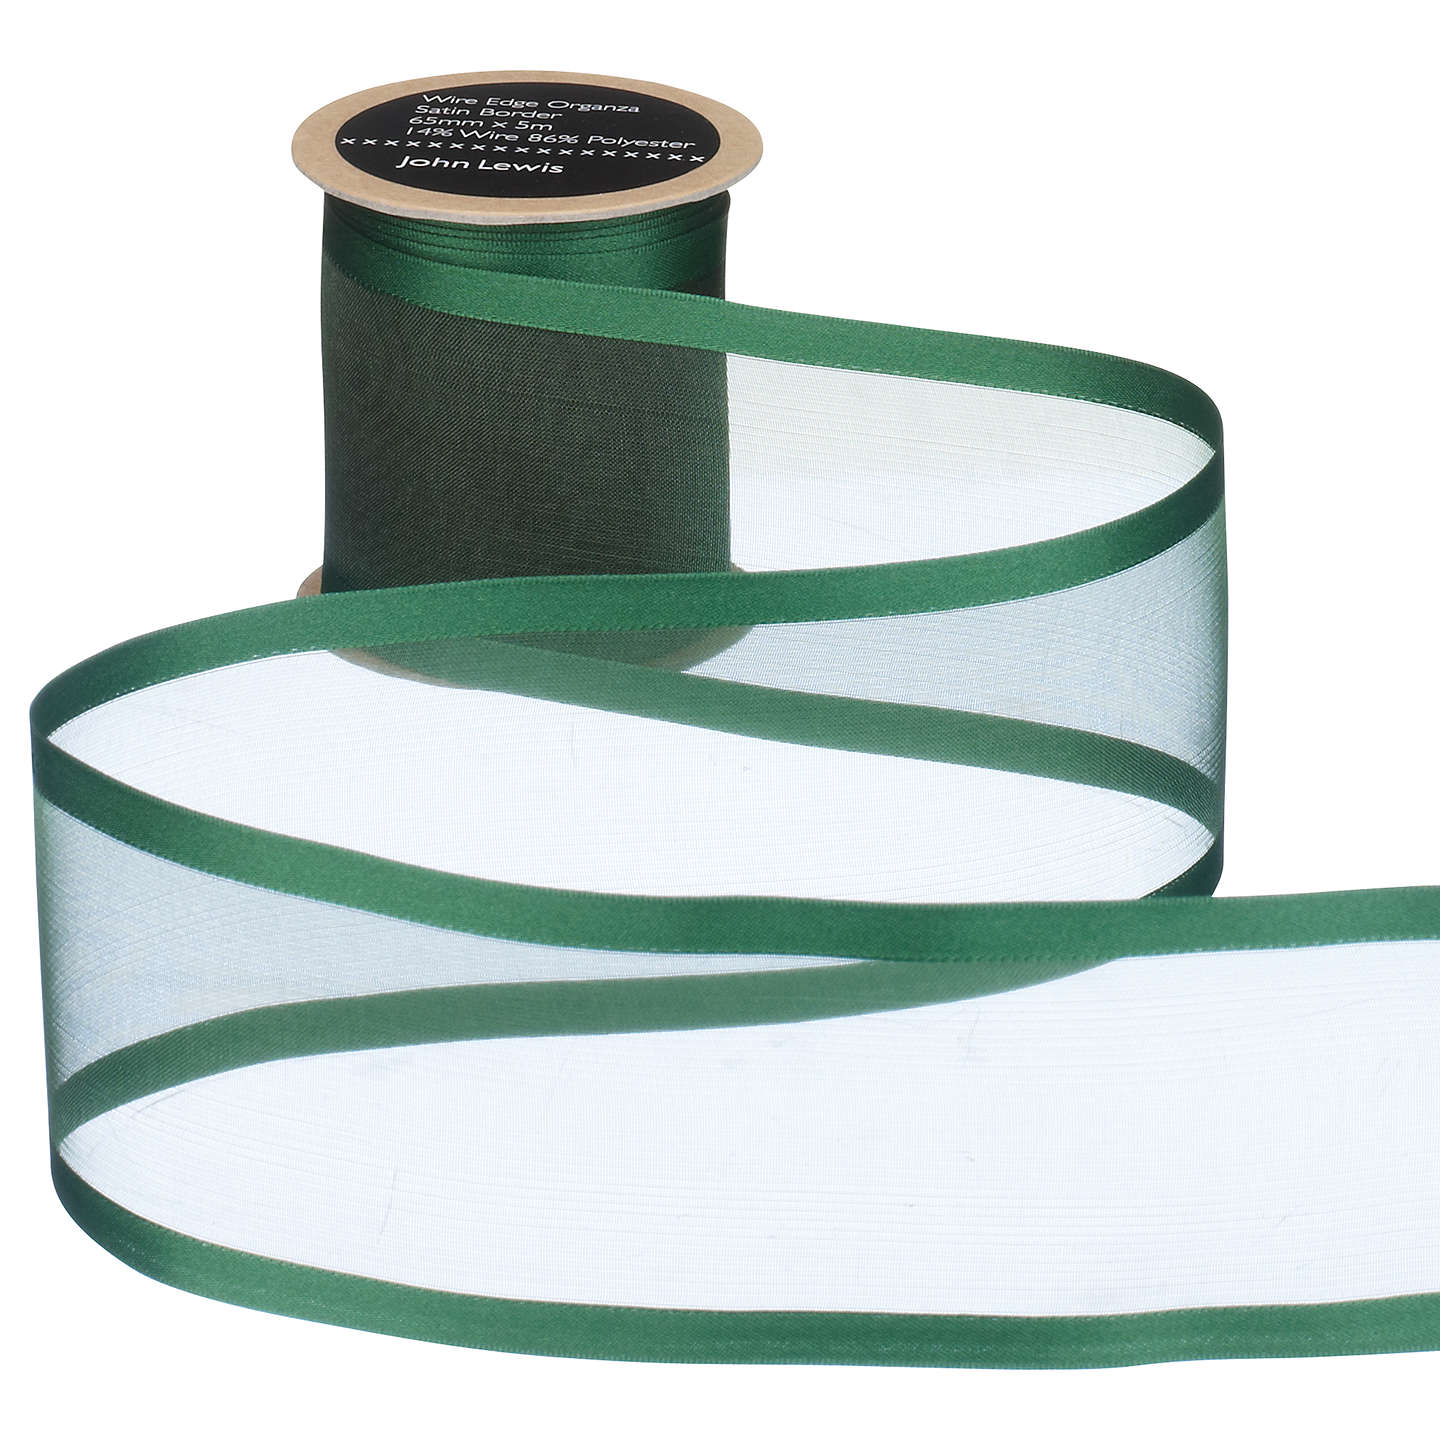 BuyJohn Lewis Wire Edge Woven Sheer Organza Ribbon, Green, 65mm Online at johnlewis.com